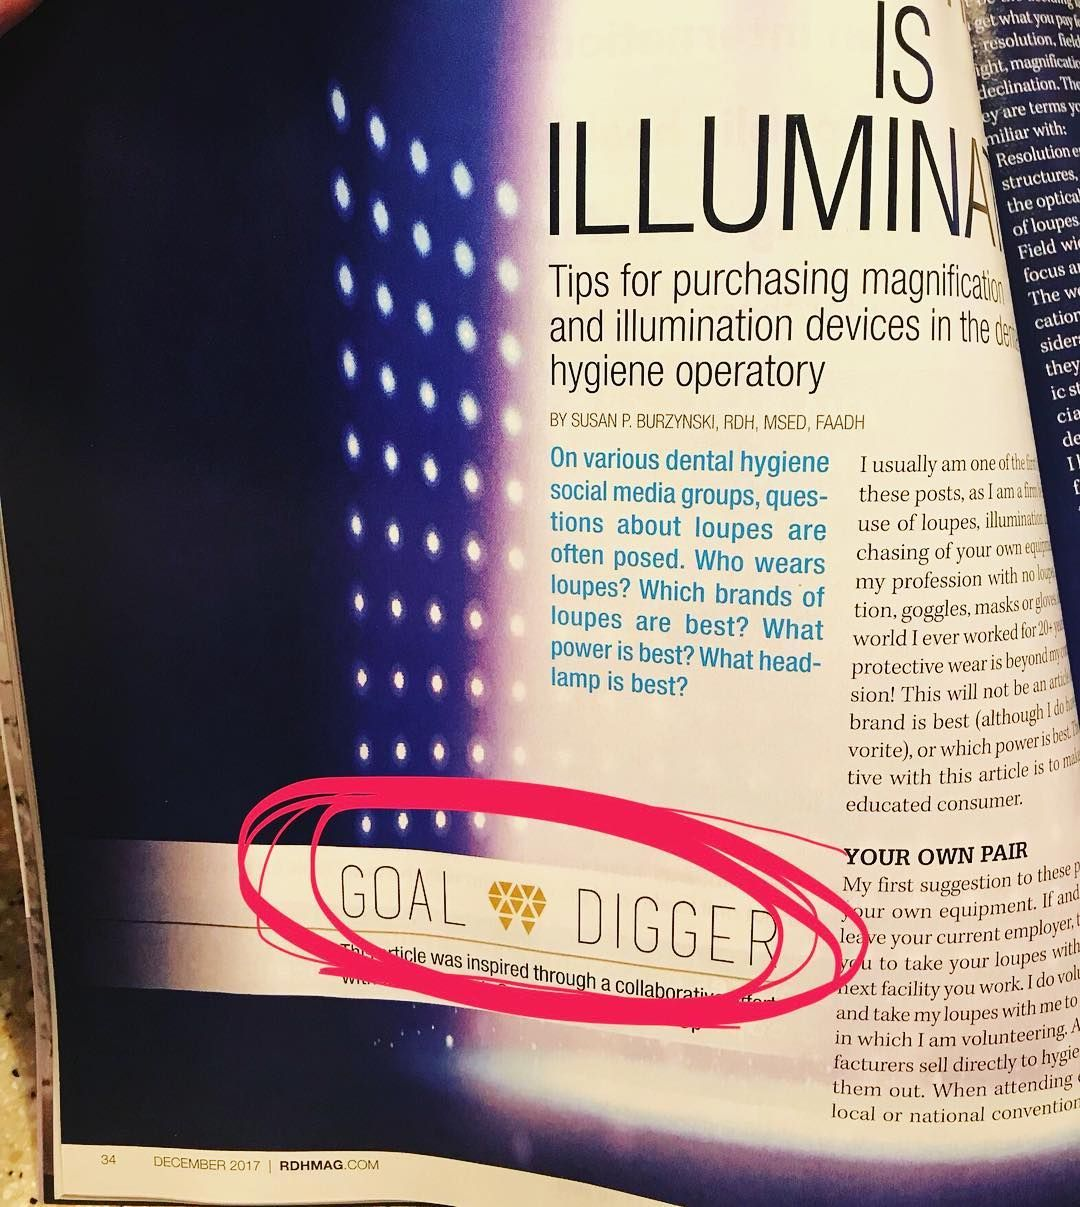 dental hygienist resume objective%0A So cool to see a logo I created  gold tooth  in a magazine